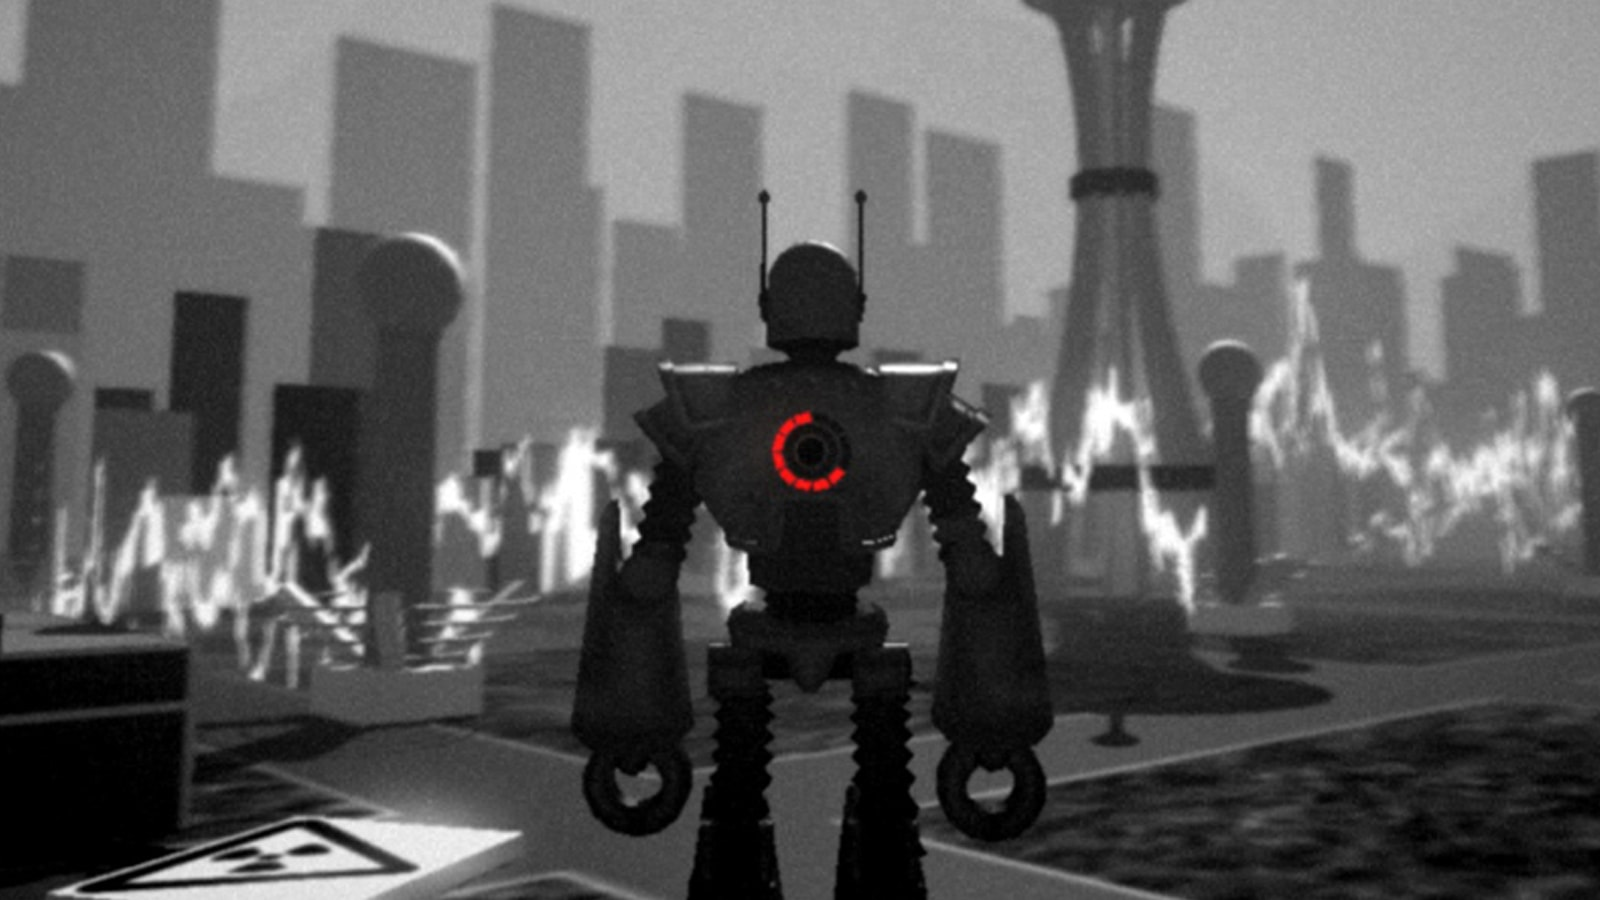 The backside of a large robot with two claw-like hands and a red light-up meter on it.